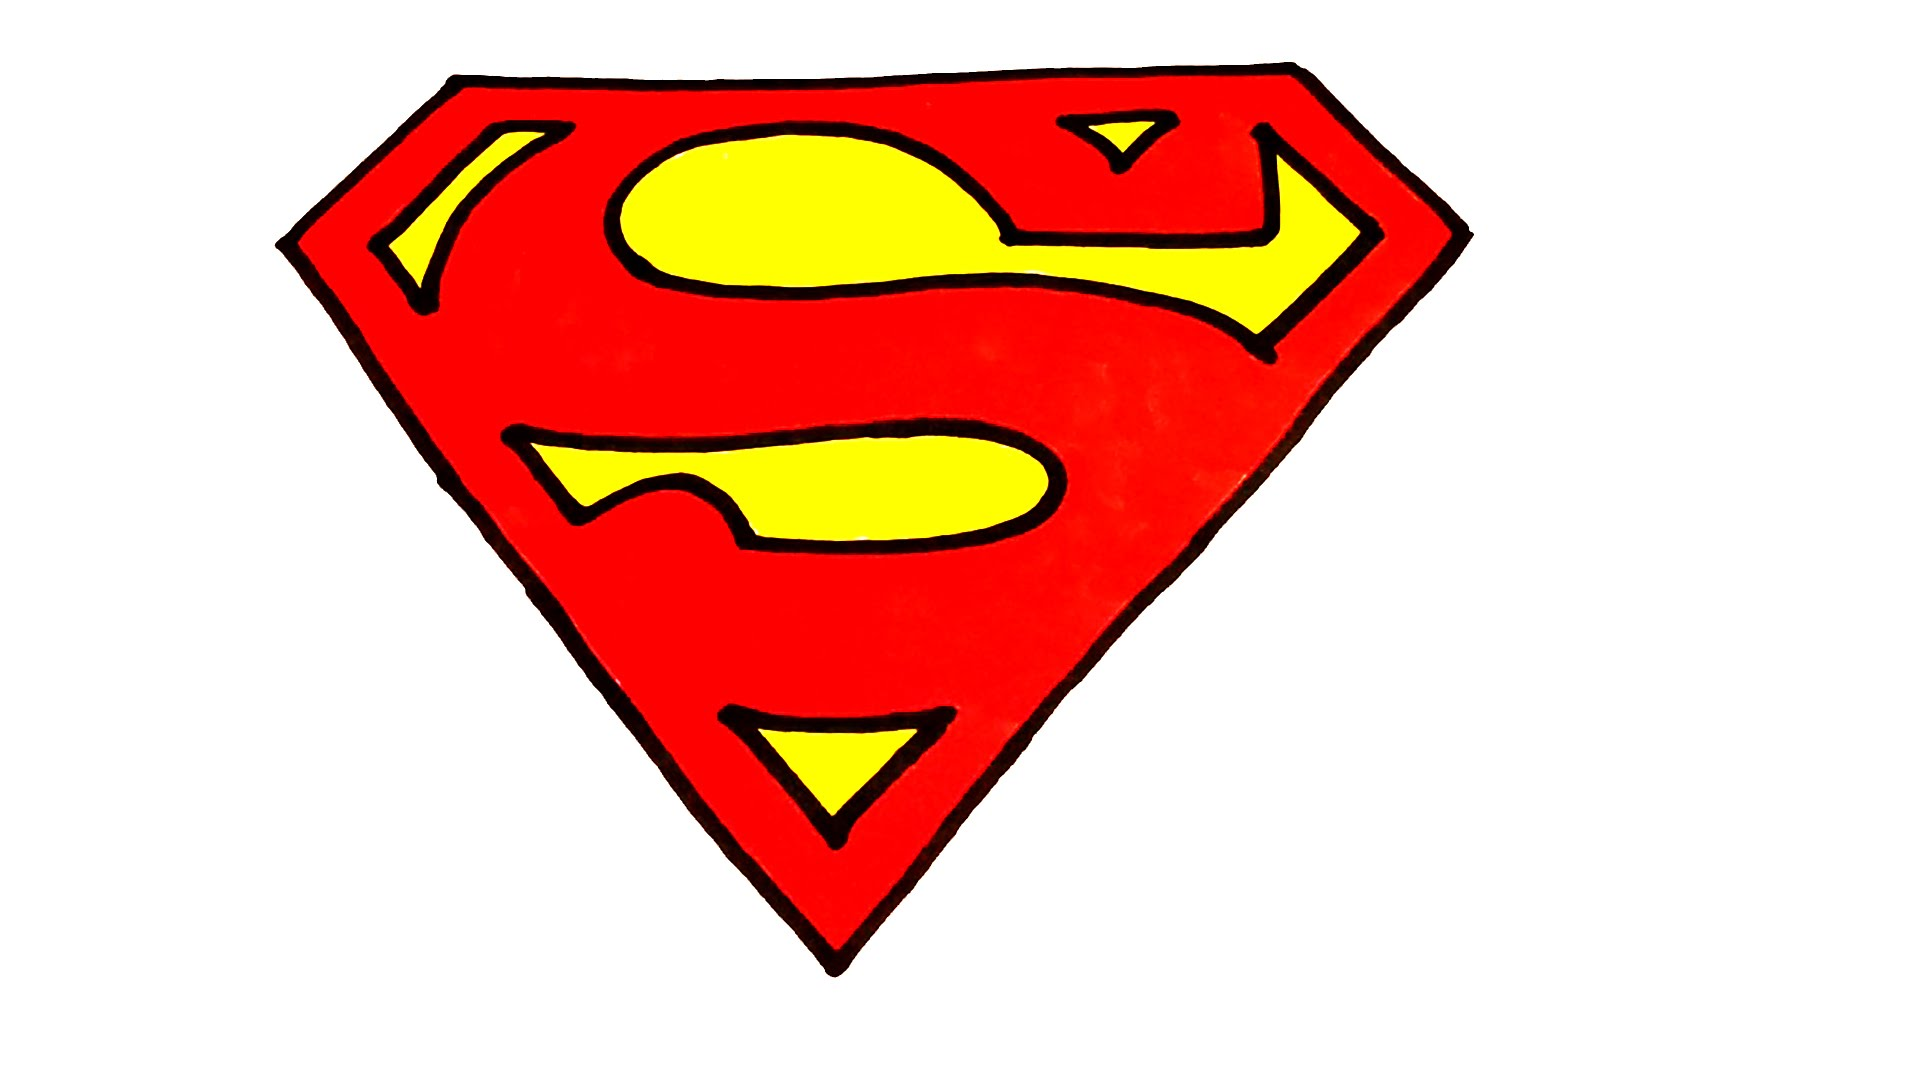 1920x1080 How To Draw Superman Logo Step By Step Easy For Kids